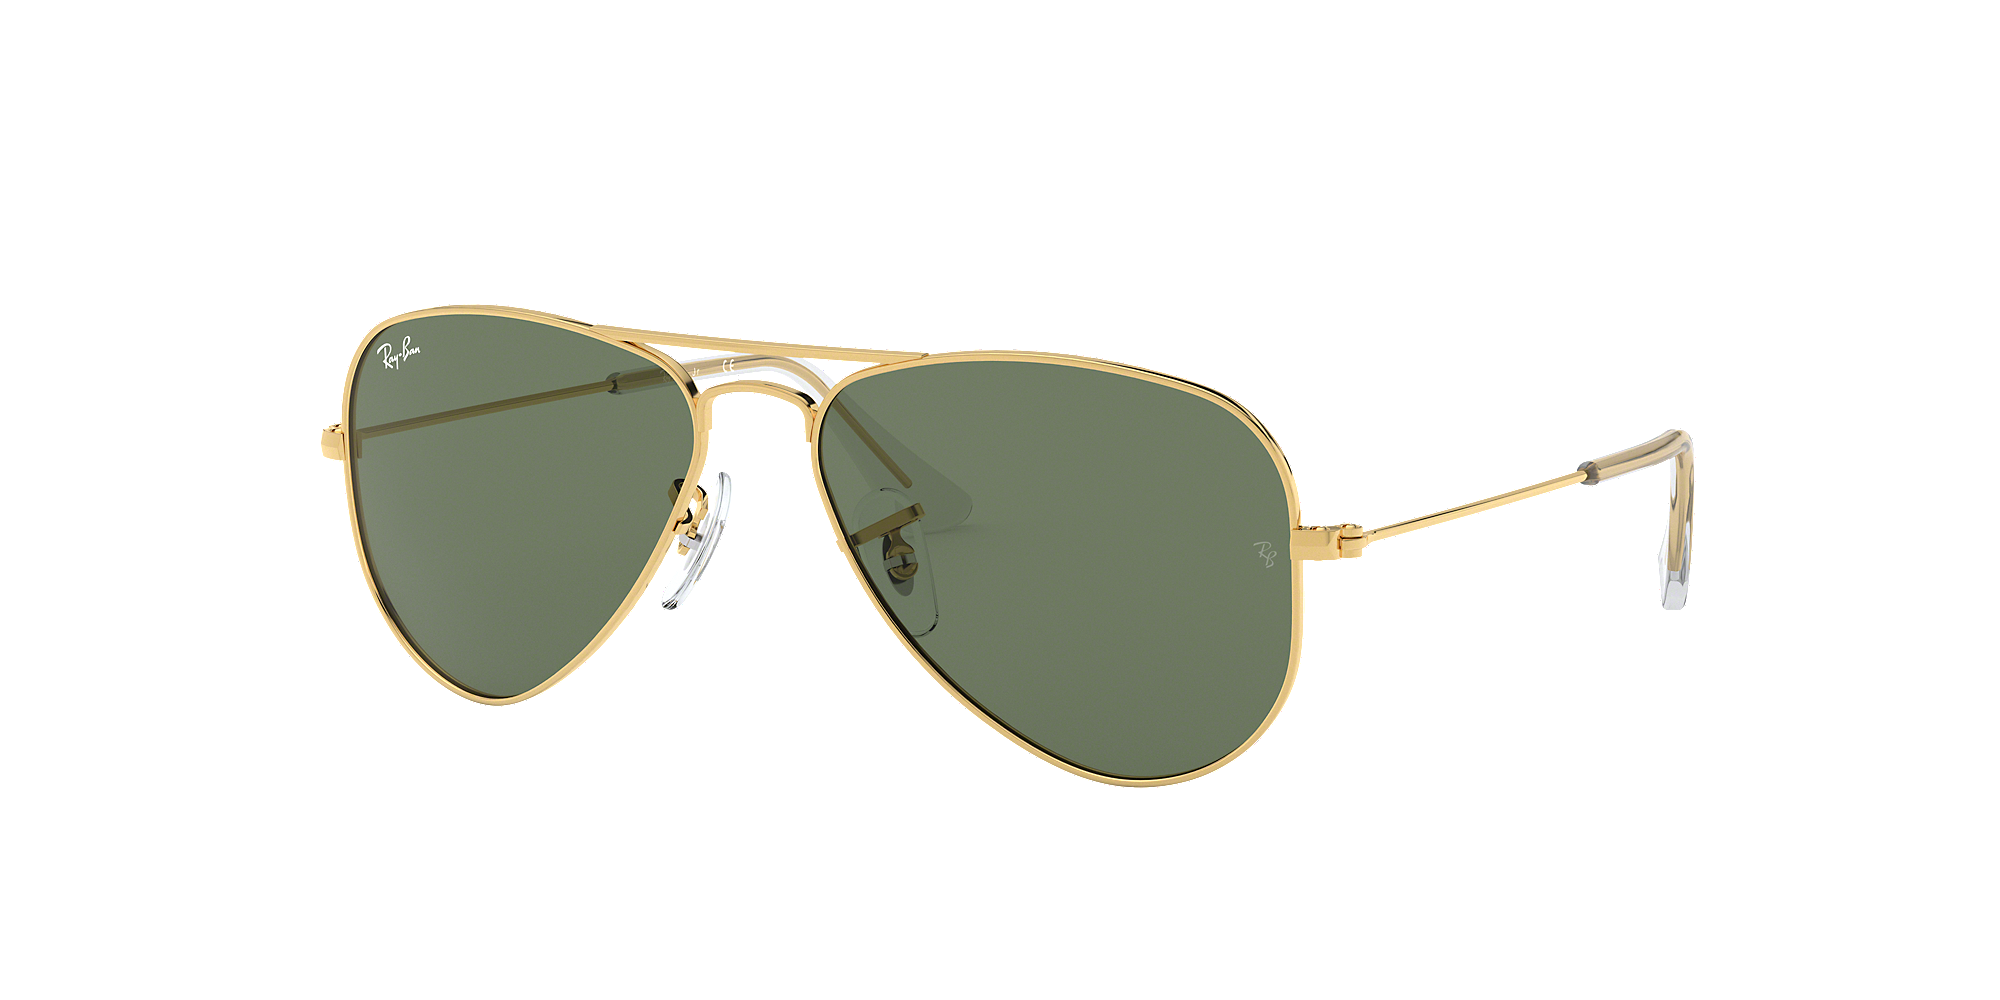 ray ban juniors 0rj9506s aviator sunglasses  ray ban junior rj9506s 0rj9506s sunglasses